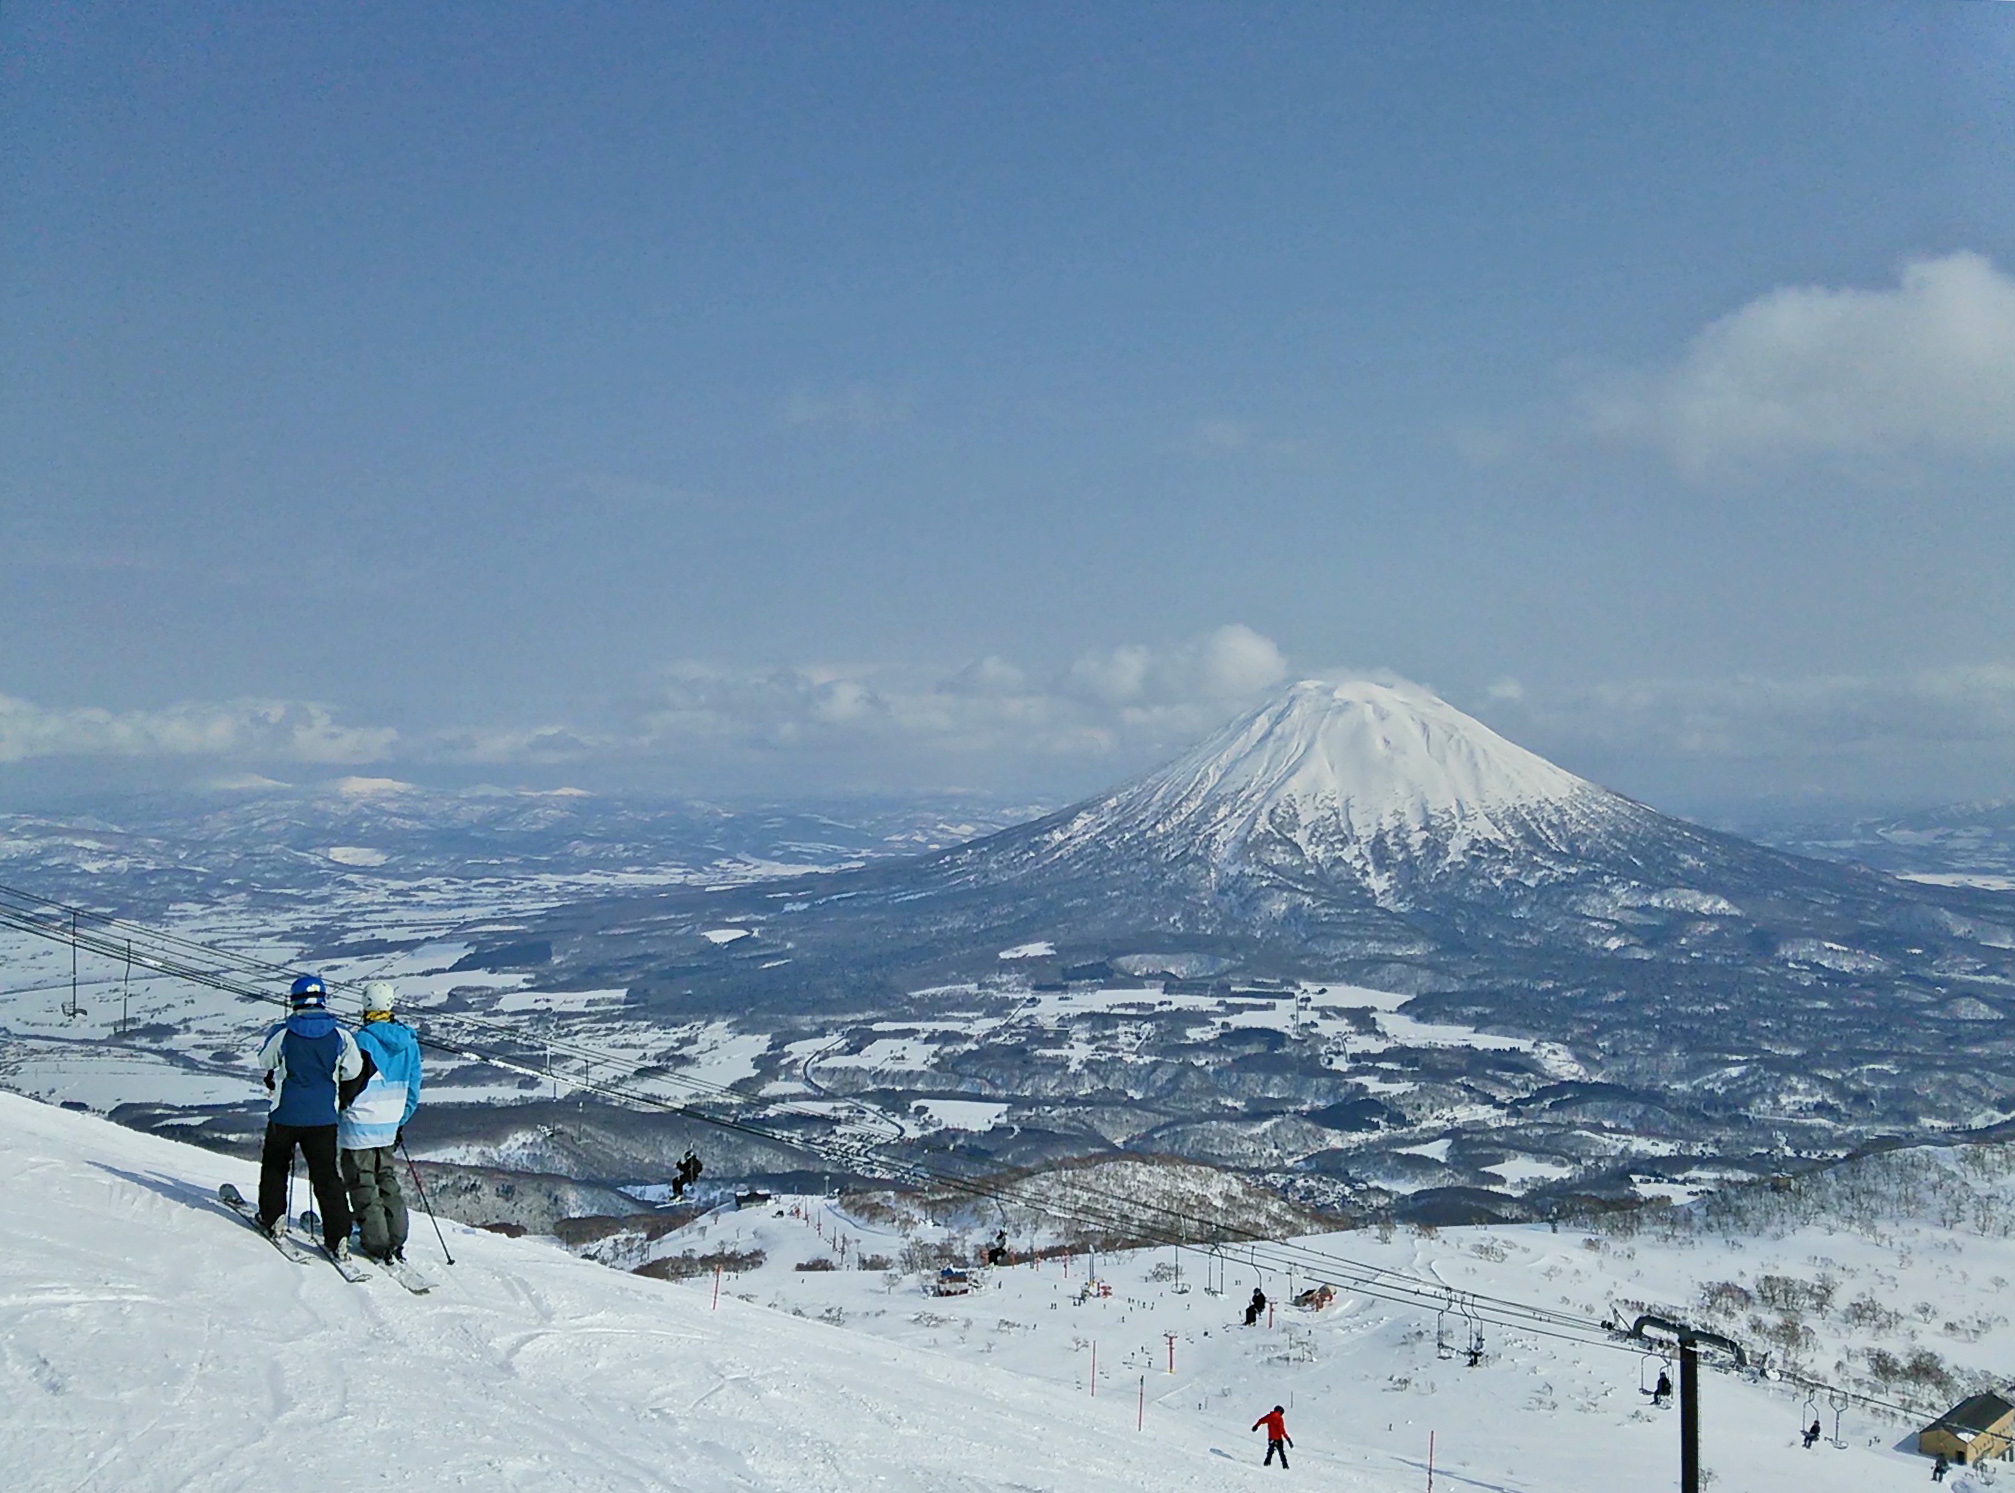 Niseko Snow Resort